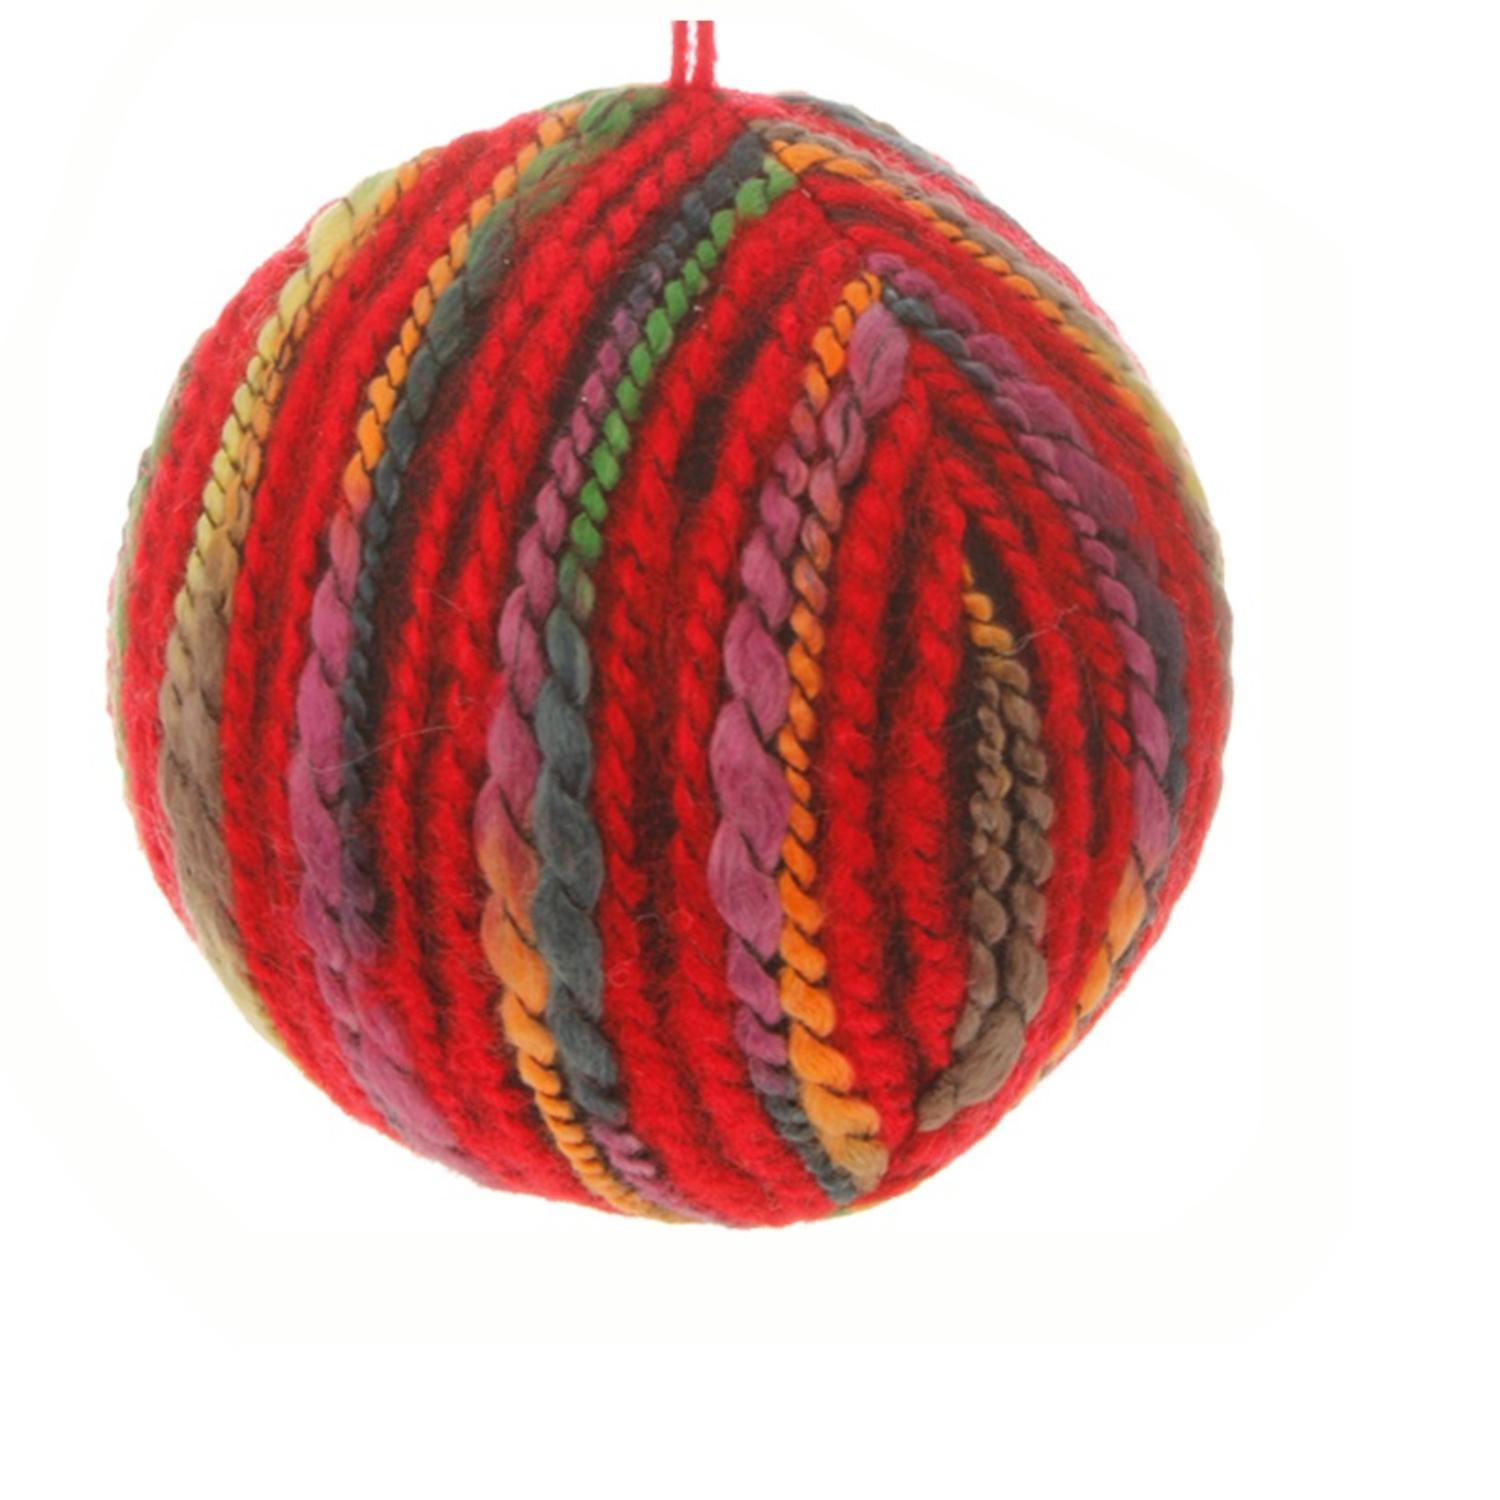 "4"" Bohemian Holiday Colorful Yarn Christmas Ball Ornament"